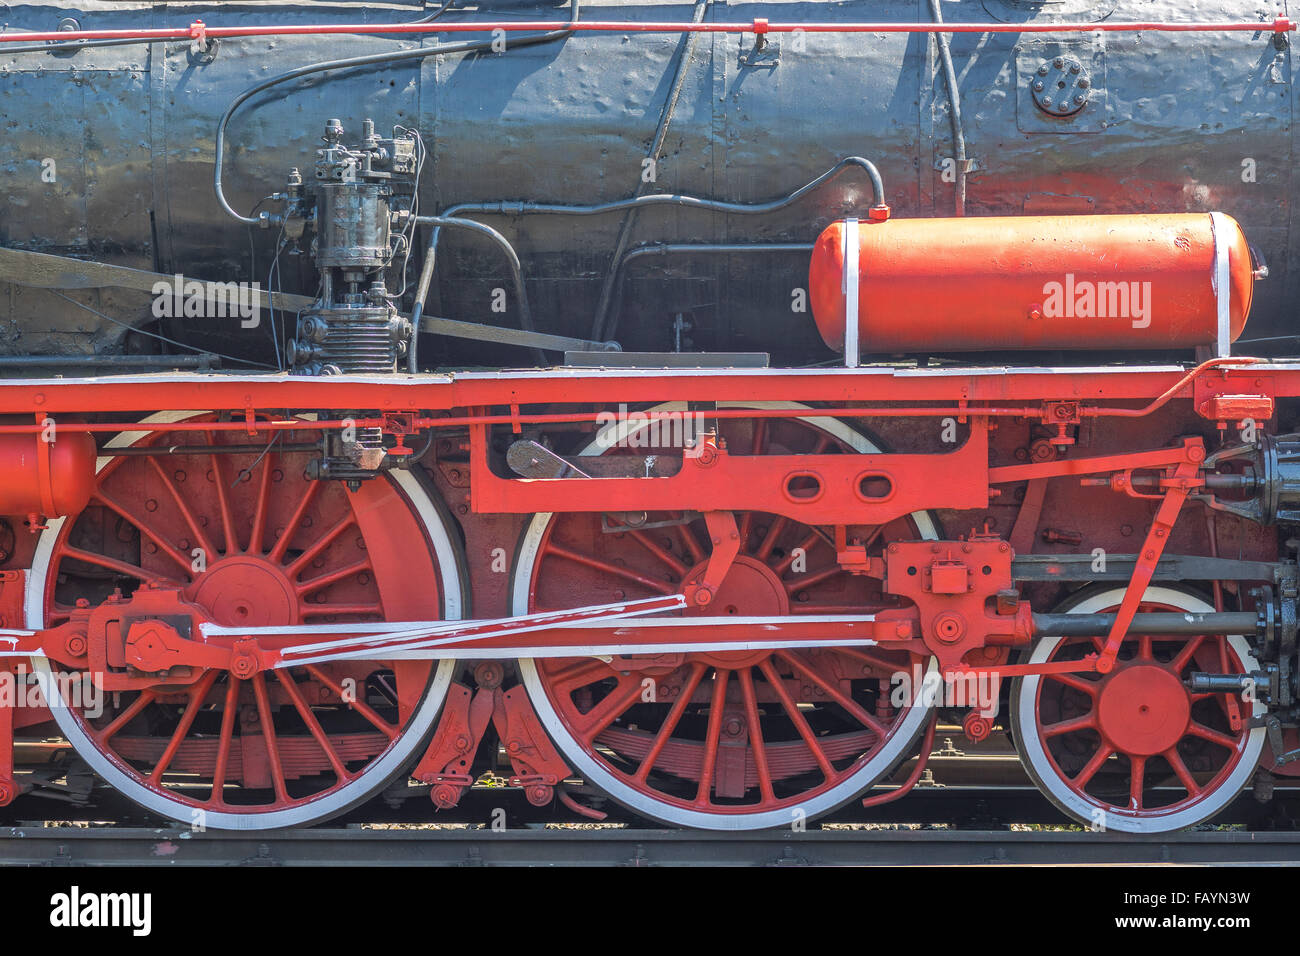 Wheels and propulsion mechanism of the locomotive - Stock Image